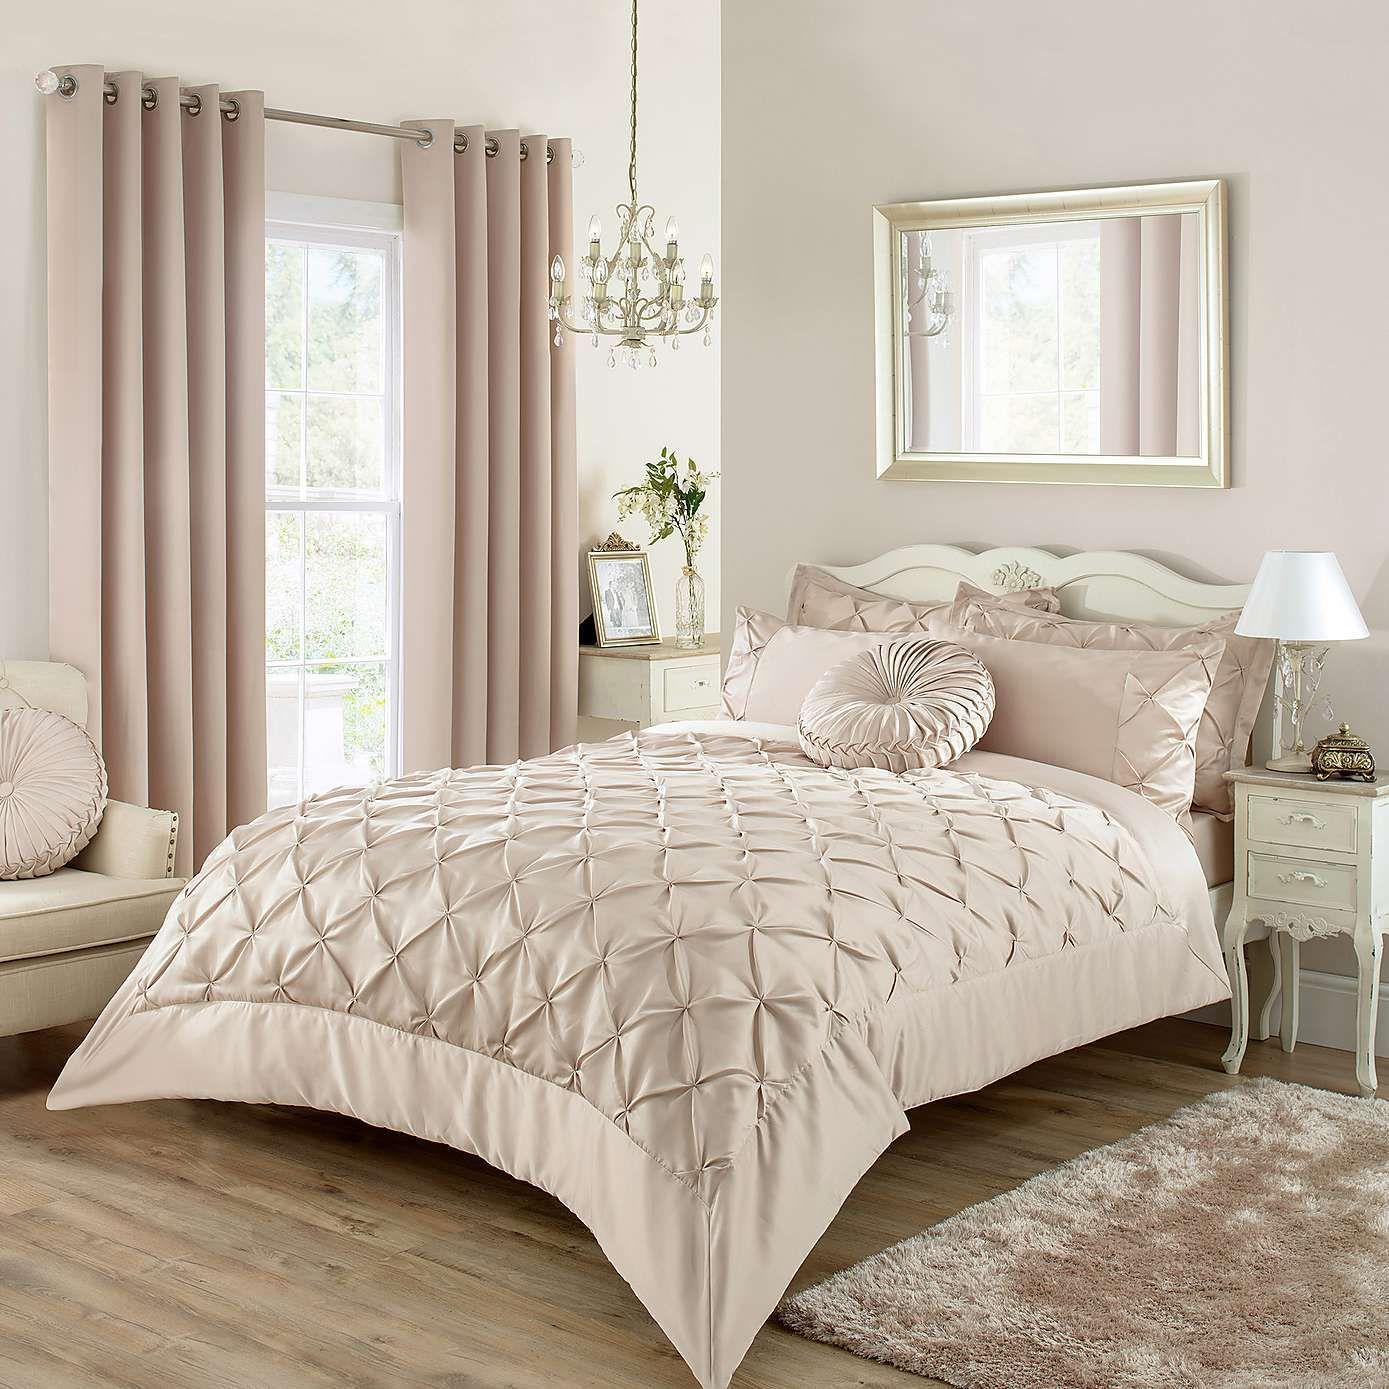 iron inspirations set with full of bedding gray size and cream carved white comforter sears picture sets ross bedroom colored astounding setsgrey blue grey